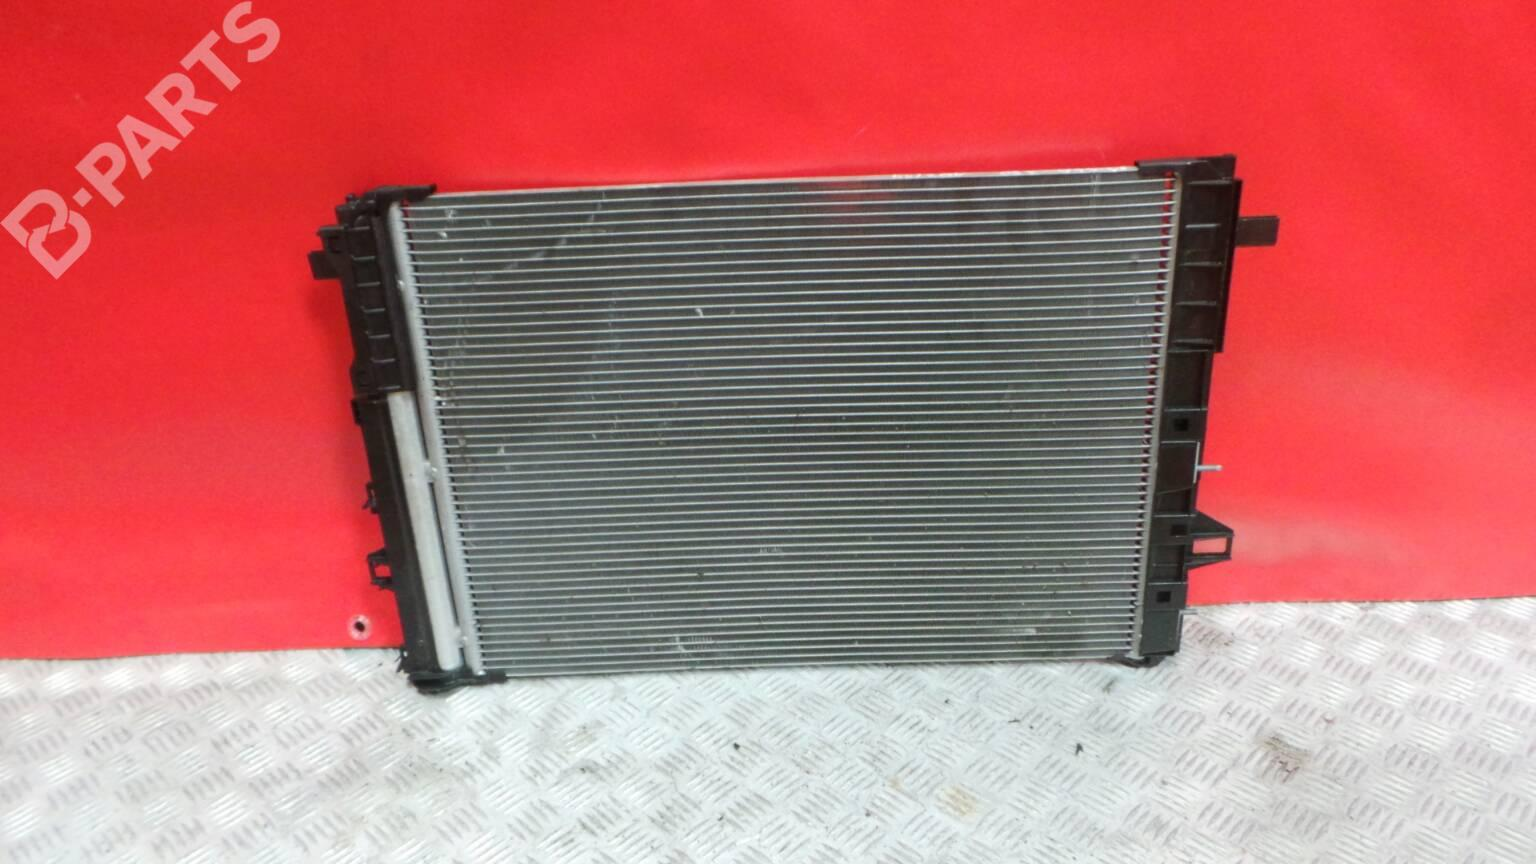 Ac Radiator Mercedes Benz Cla Coupe C117 250 117344 161062 Clk Fuse Box A 246 501 17 20